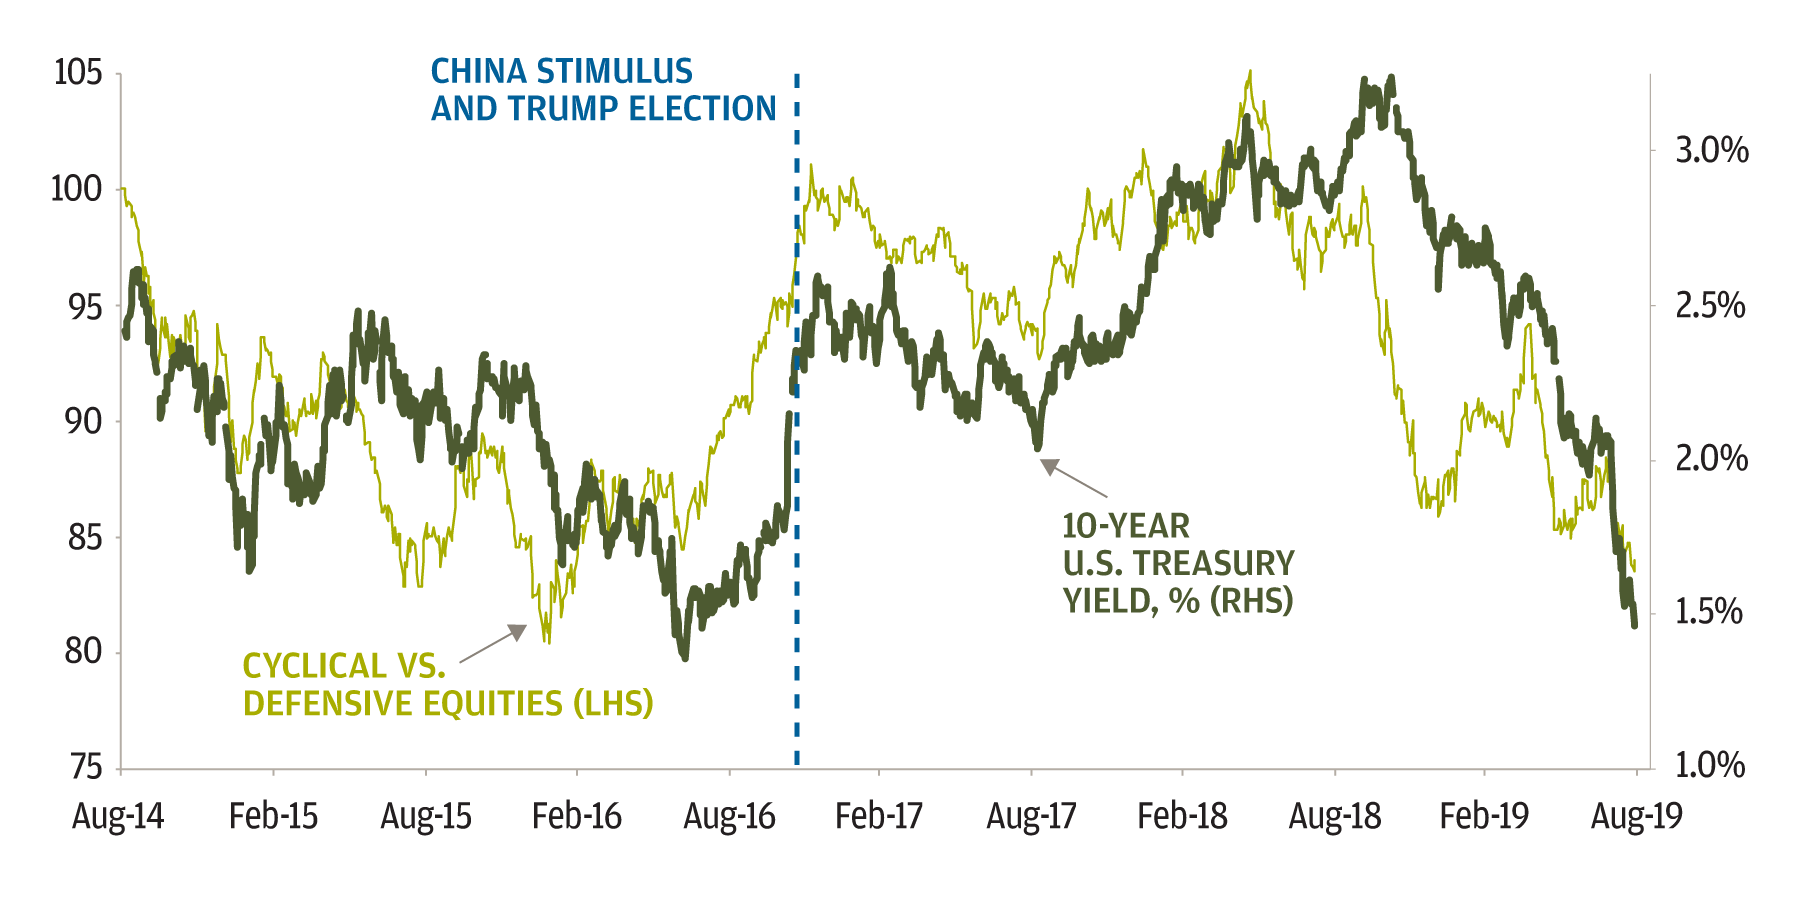 Enthusiasm after China stimulus and Trump's election was fleeting